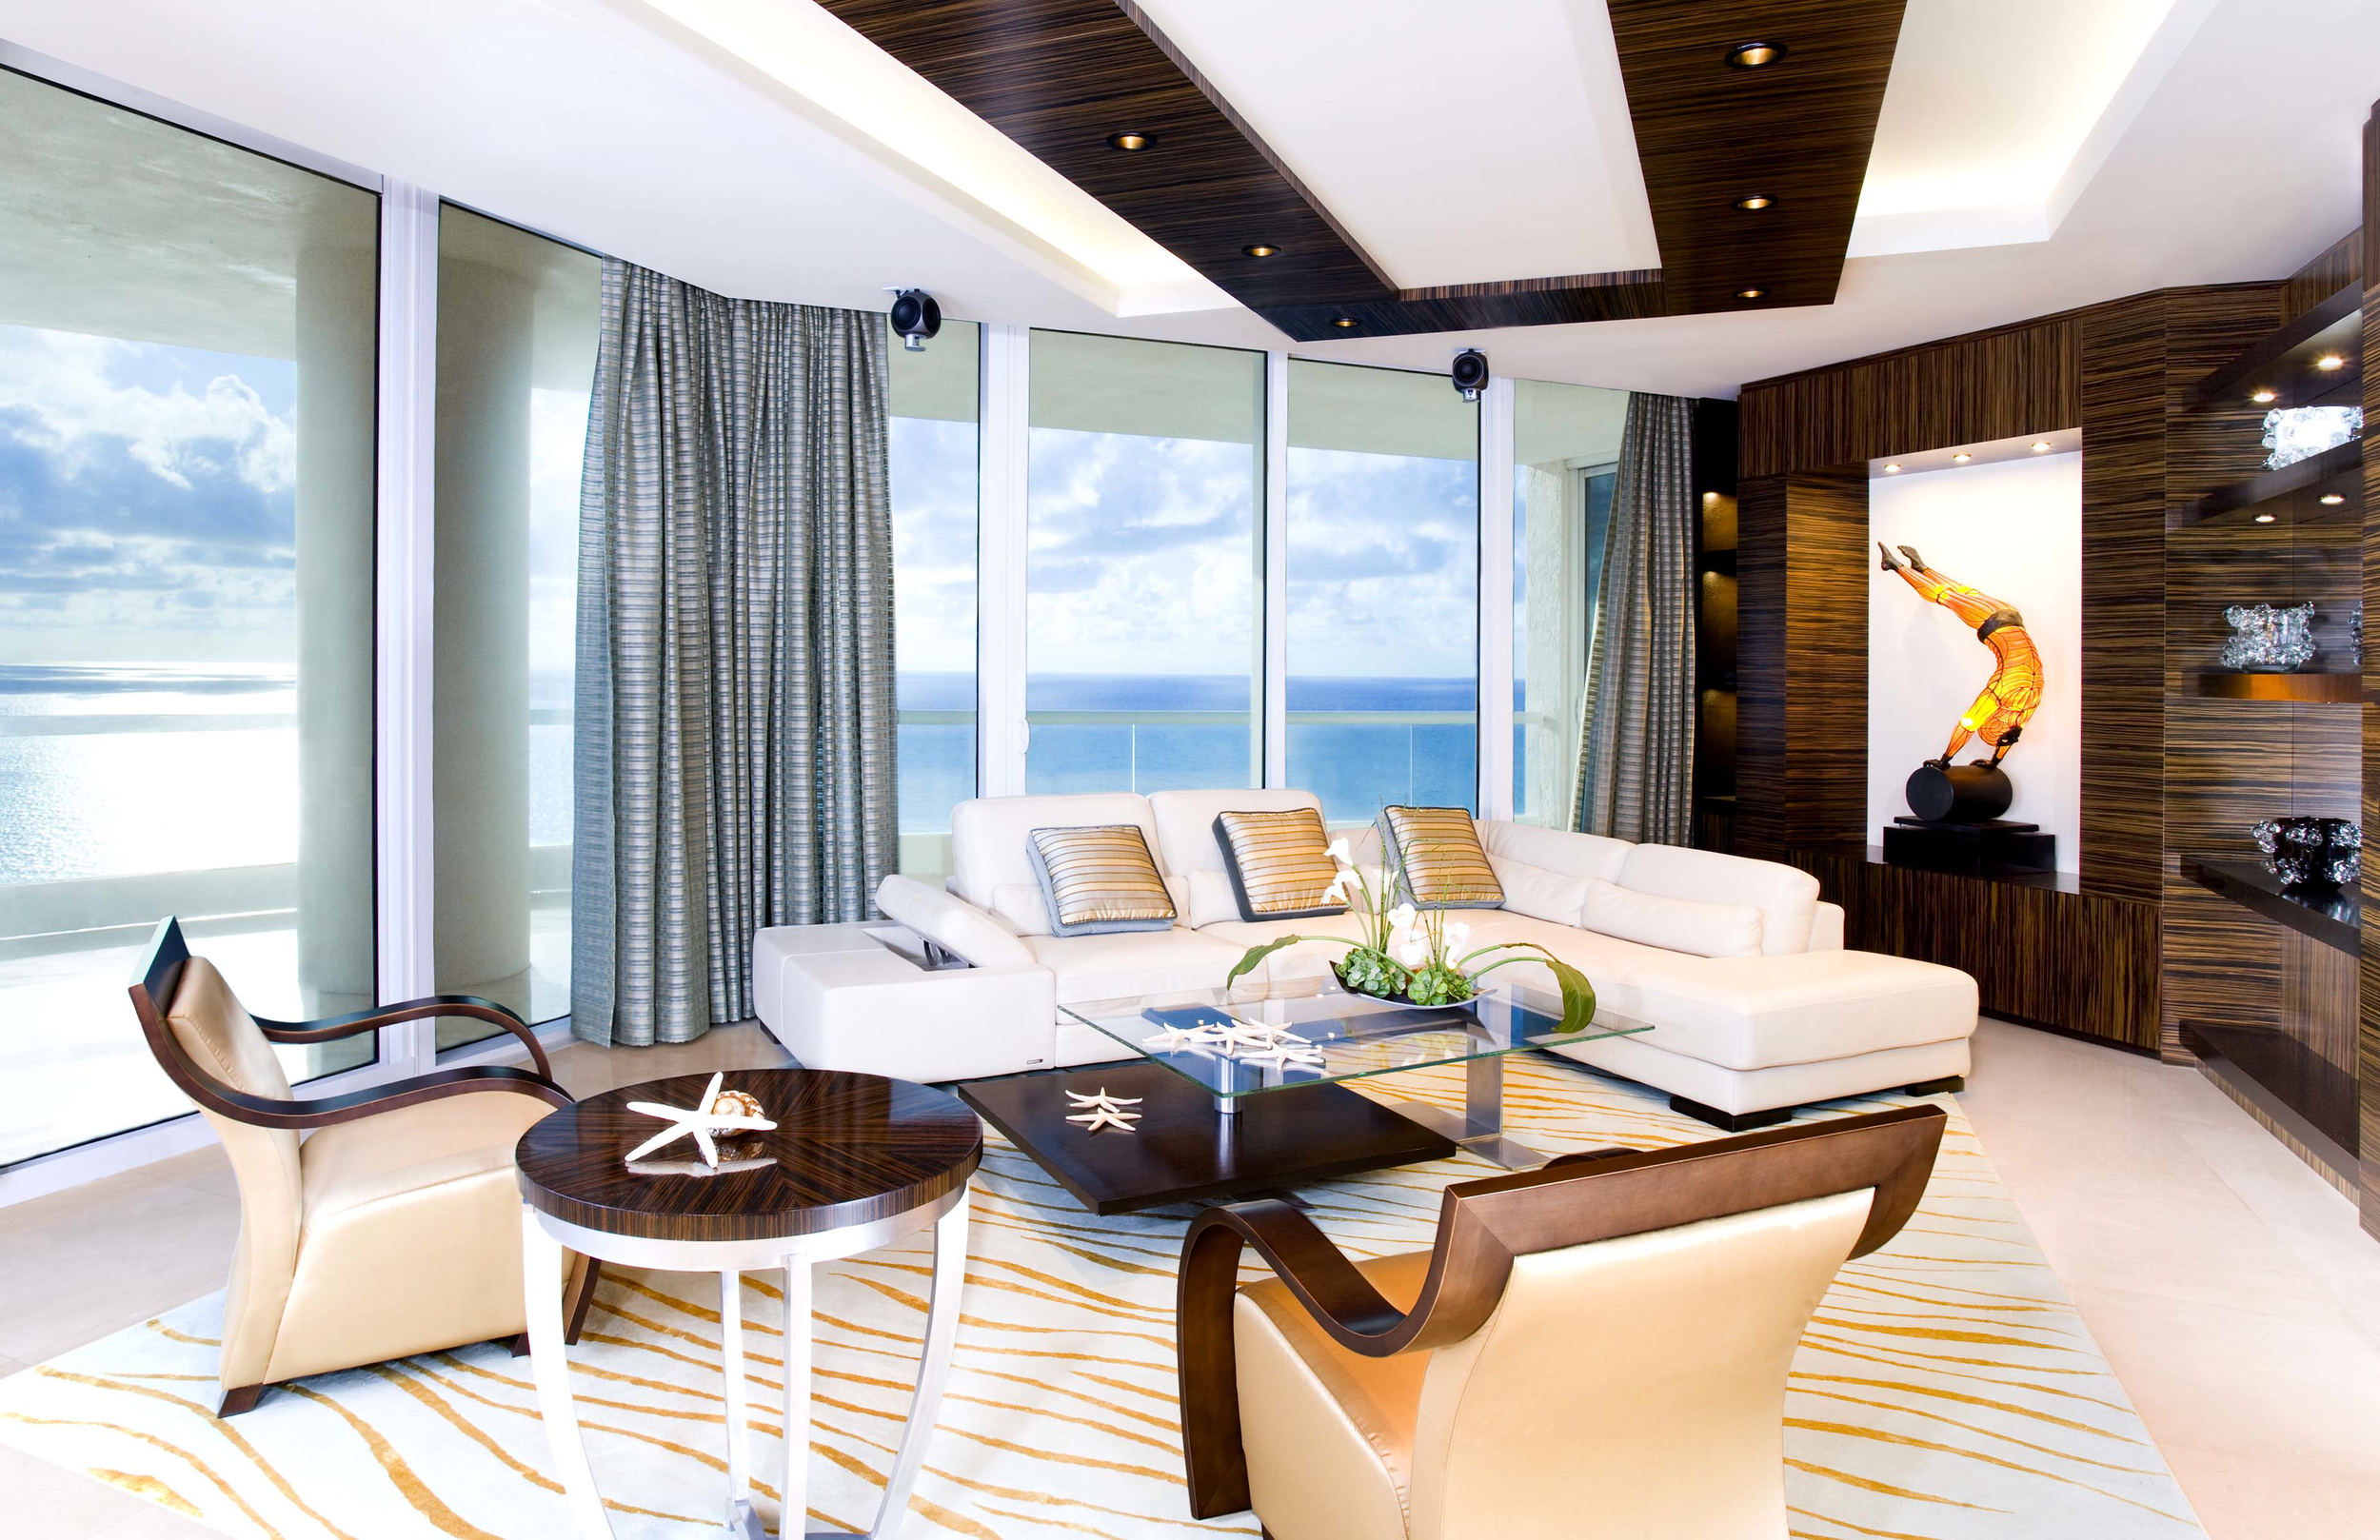 Interiors + Yacht + Real Estate